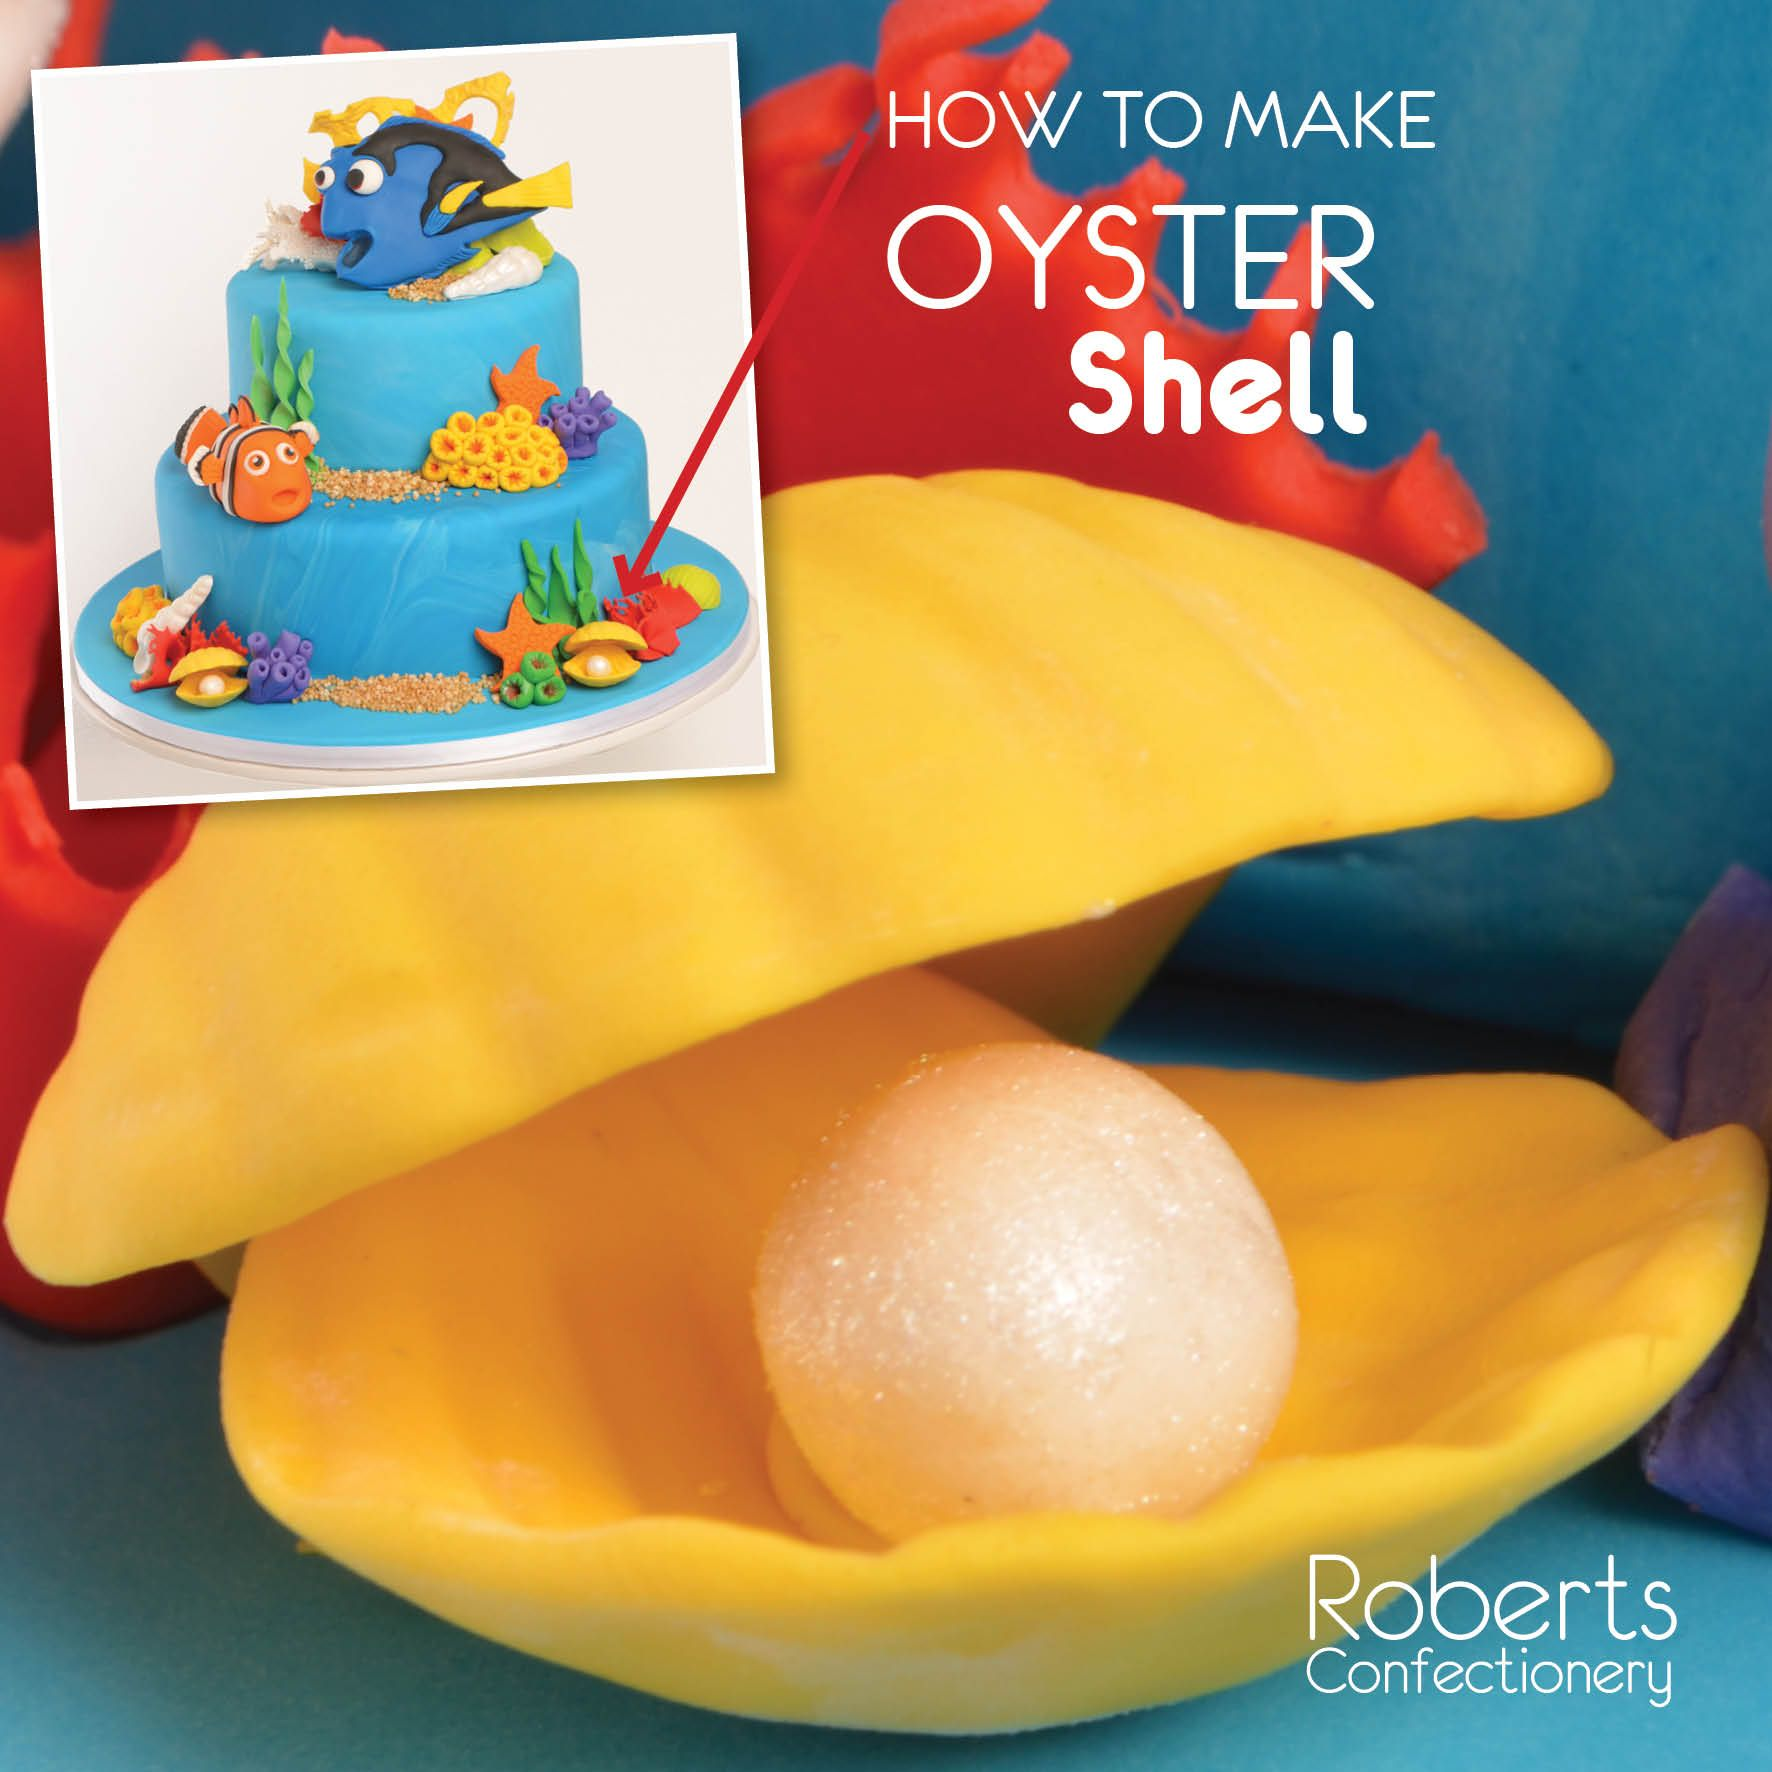 FInding Dory Cake: How to make Oyster Shell - Dust 3D Shell Mould with cornflour to prevent fondant sticking. Roll small balls of Yellow Gum Paste. Press into each shell cavity. Leave to dry. Roll small balls of White Gum Paste into pearls. Dust with Edible Dust. Full recipe on Roberts Confectionery website: http://www.robertsconfectionery.com.au/pages/recipe-sheets